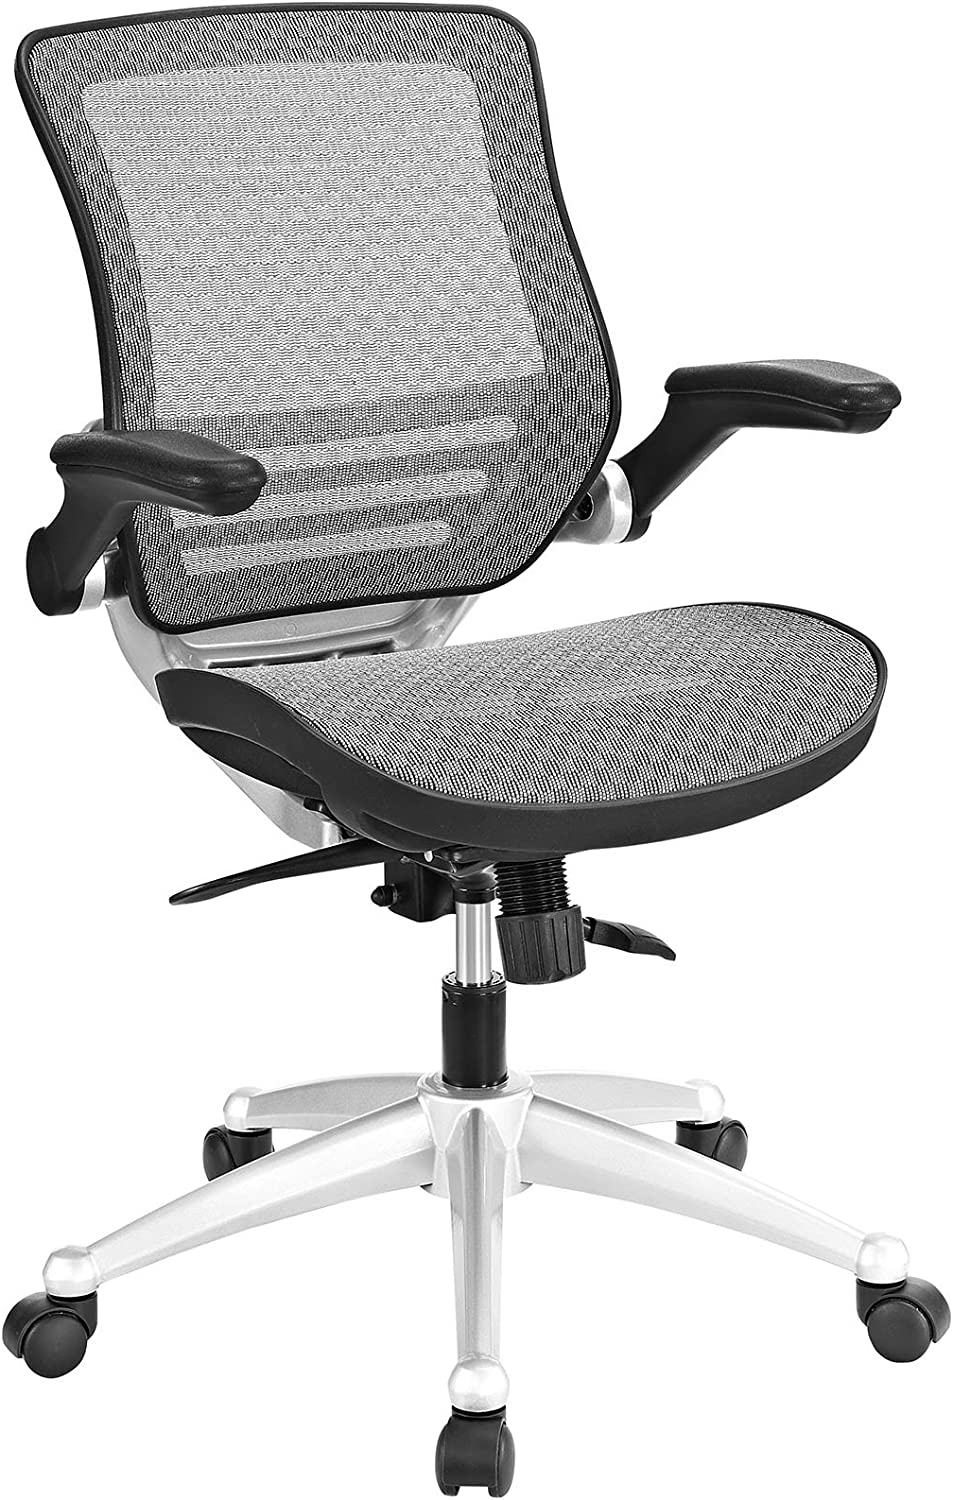 Modway Edge All Mesh Office Chair In Gray With Flip-Up Arms - Perfect For Computer Desks